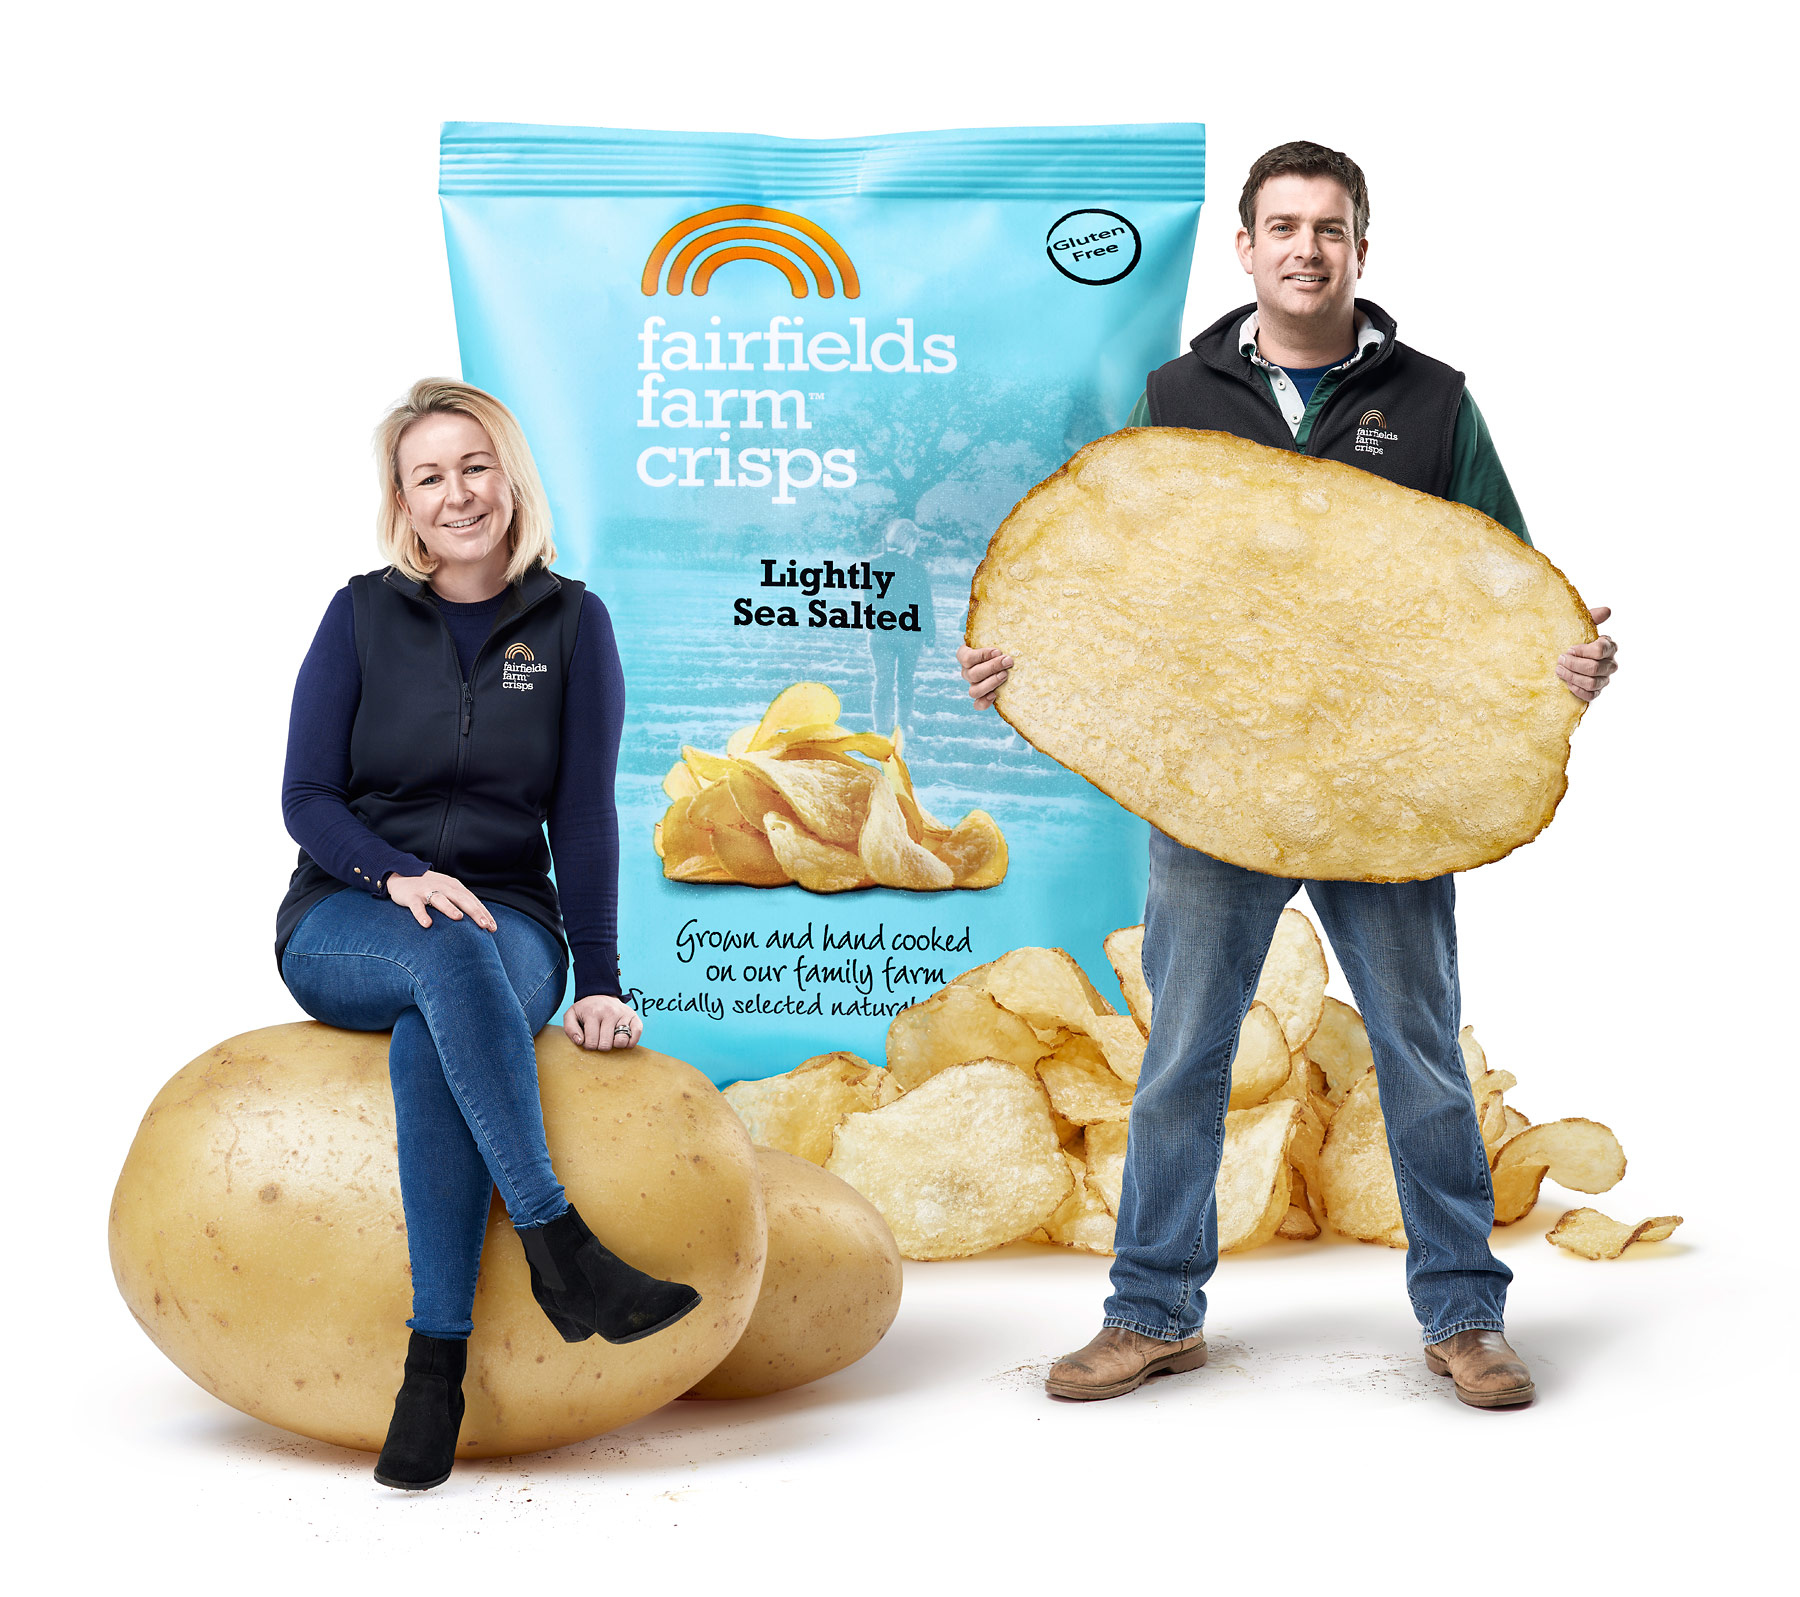 Fairfields farm crips producers Laura and Robert